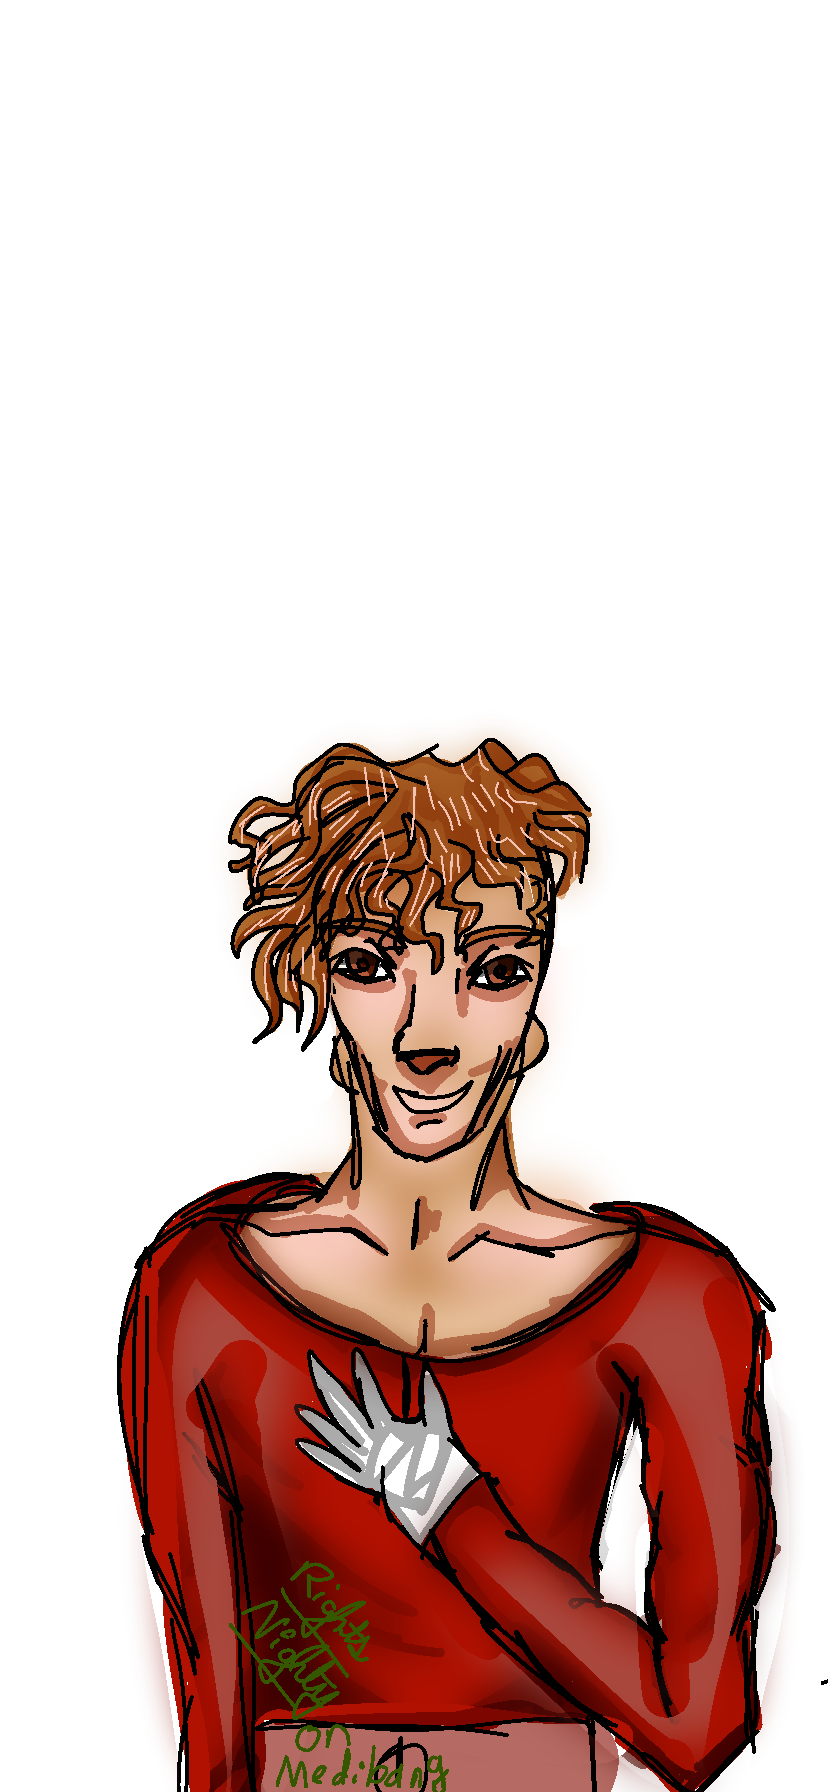 Jack Avery (Why Don\'t We) fanart for a friend.